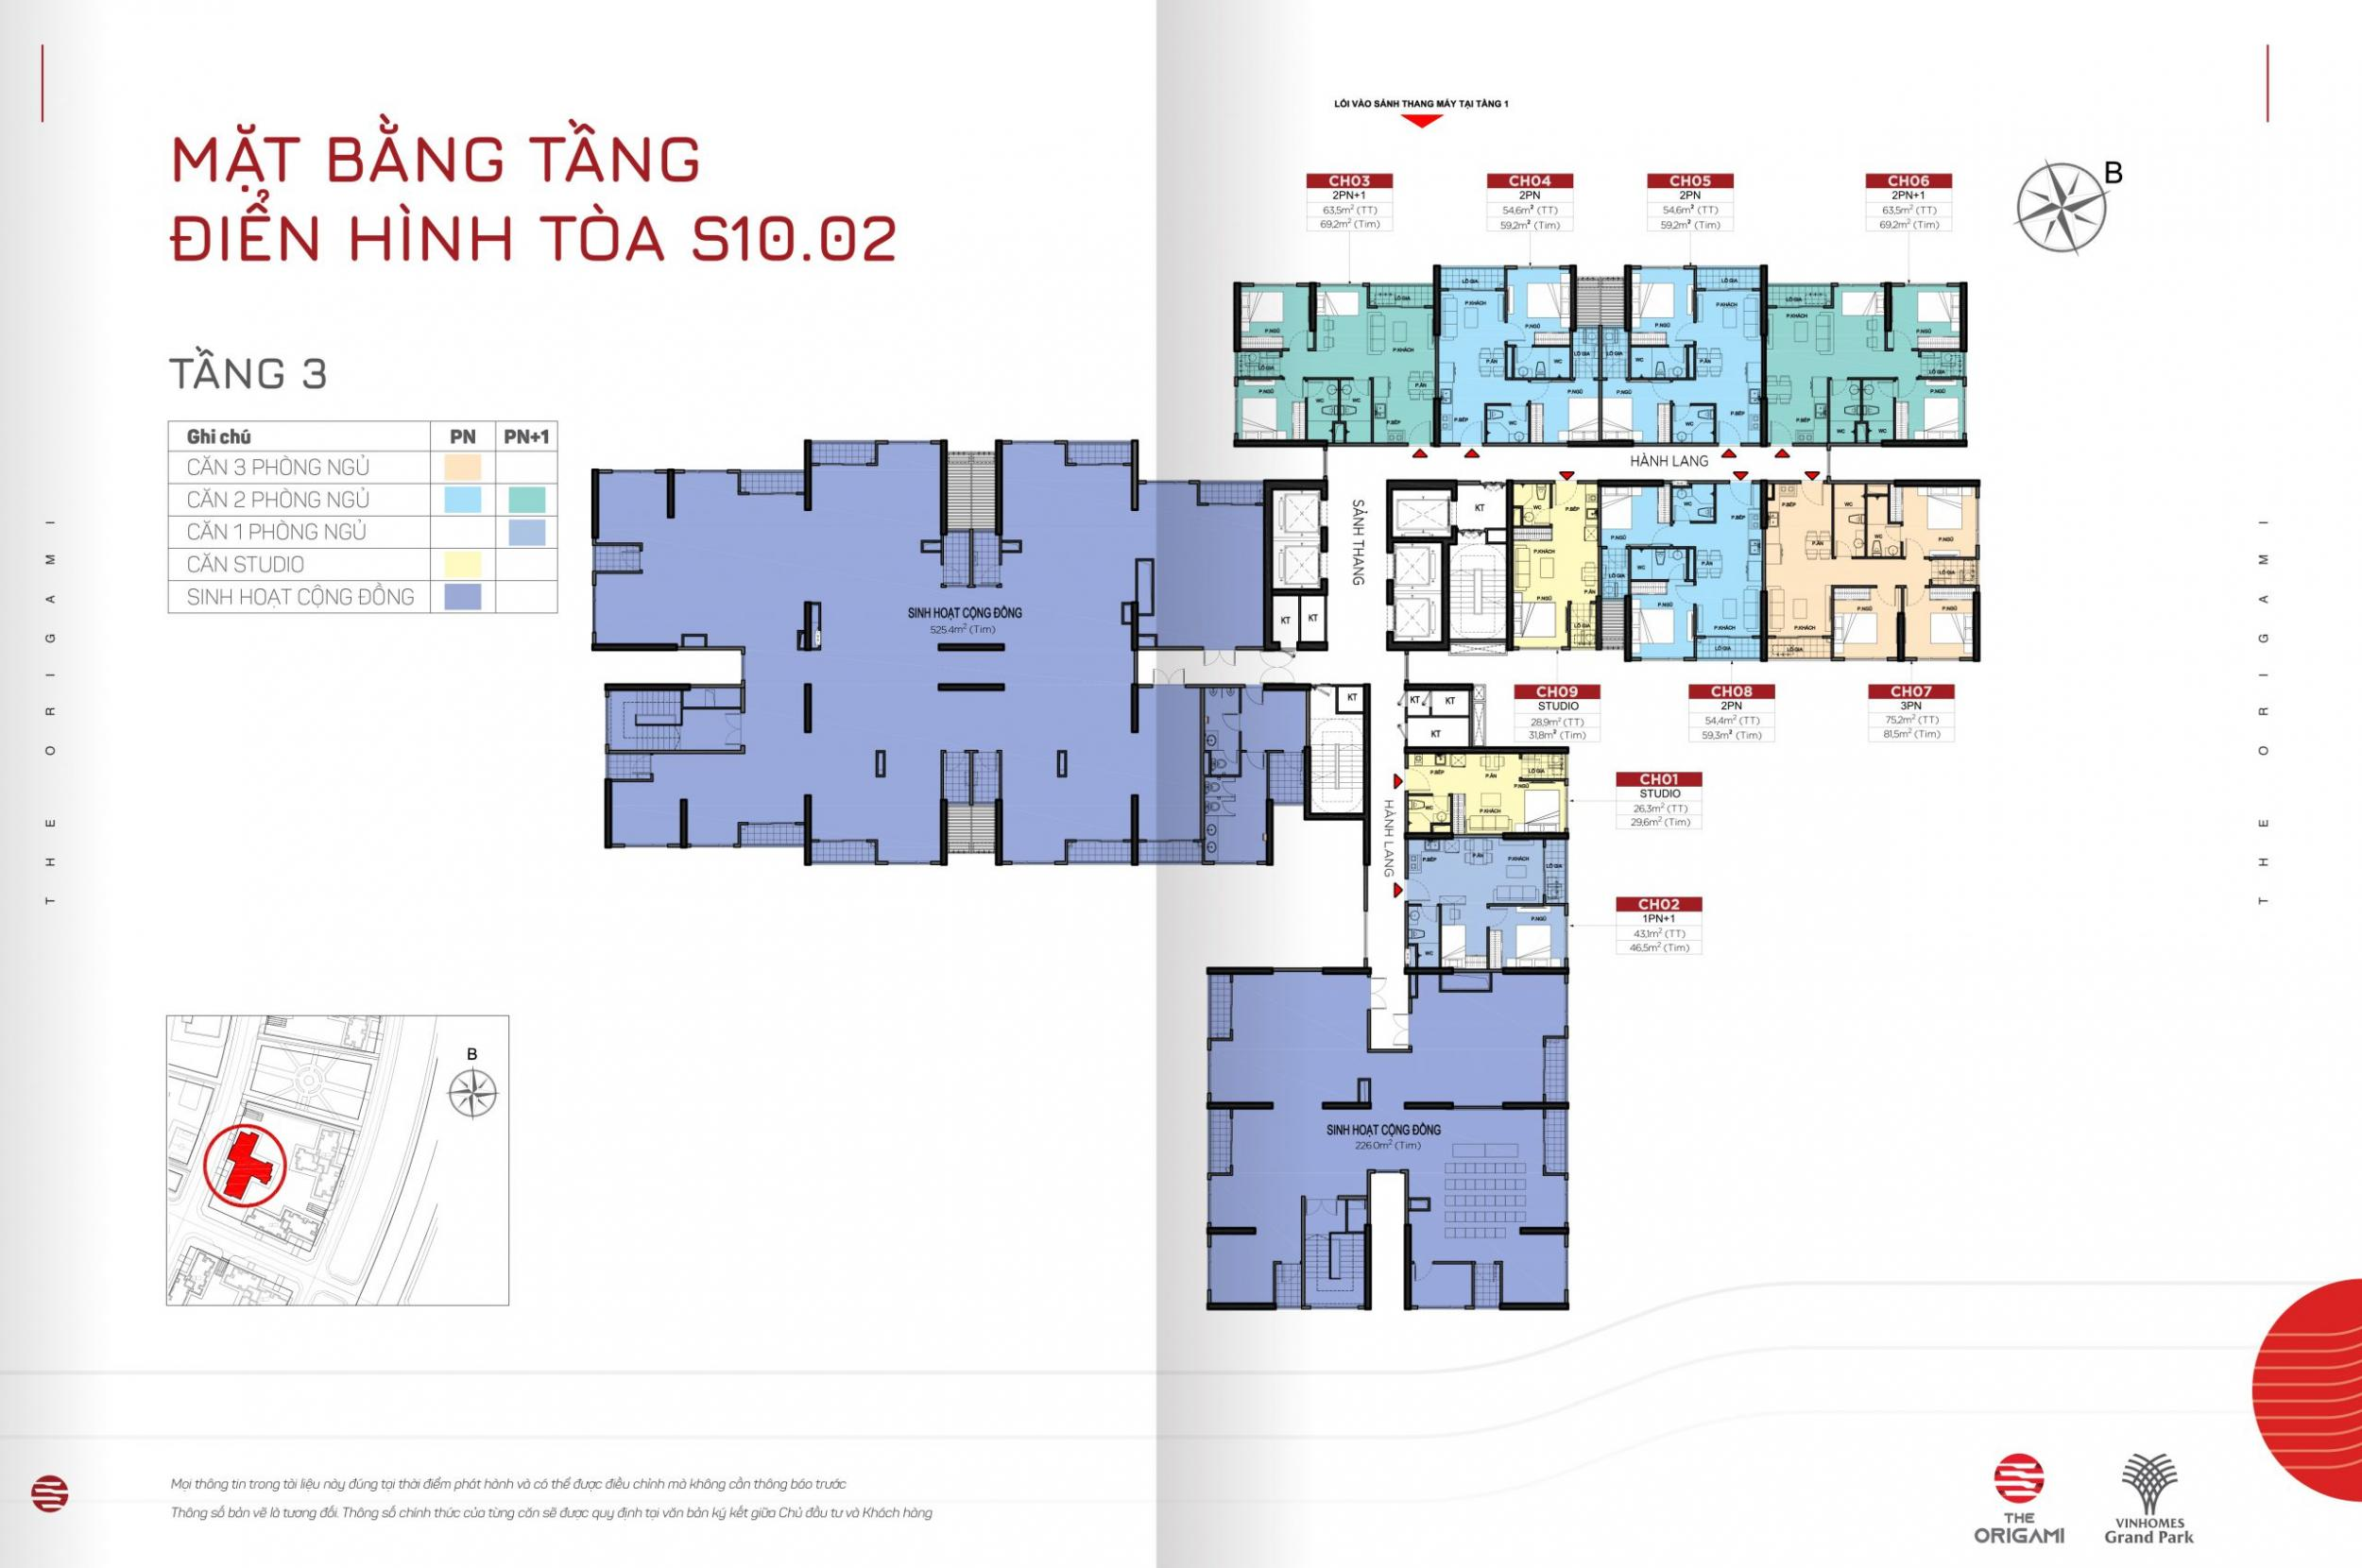 Mặt bằng S10.02 The Origami Vinhomes Grand Park - tầng 3